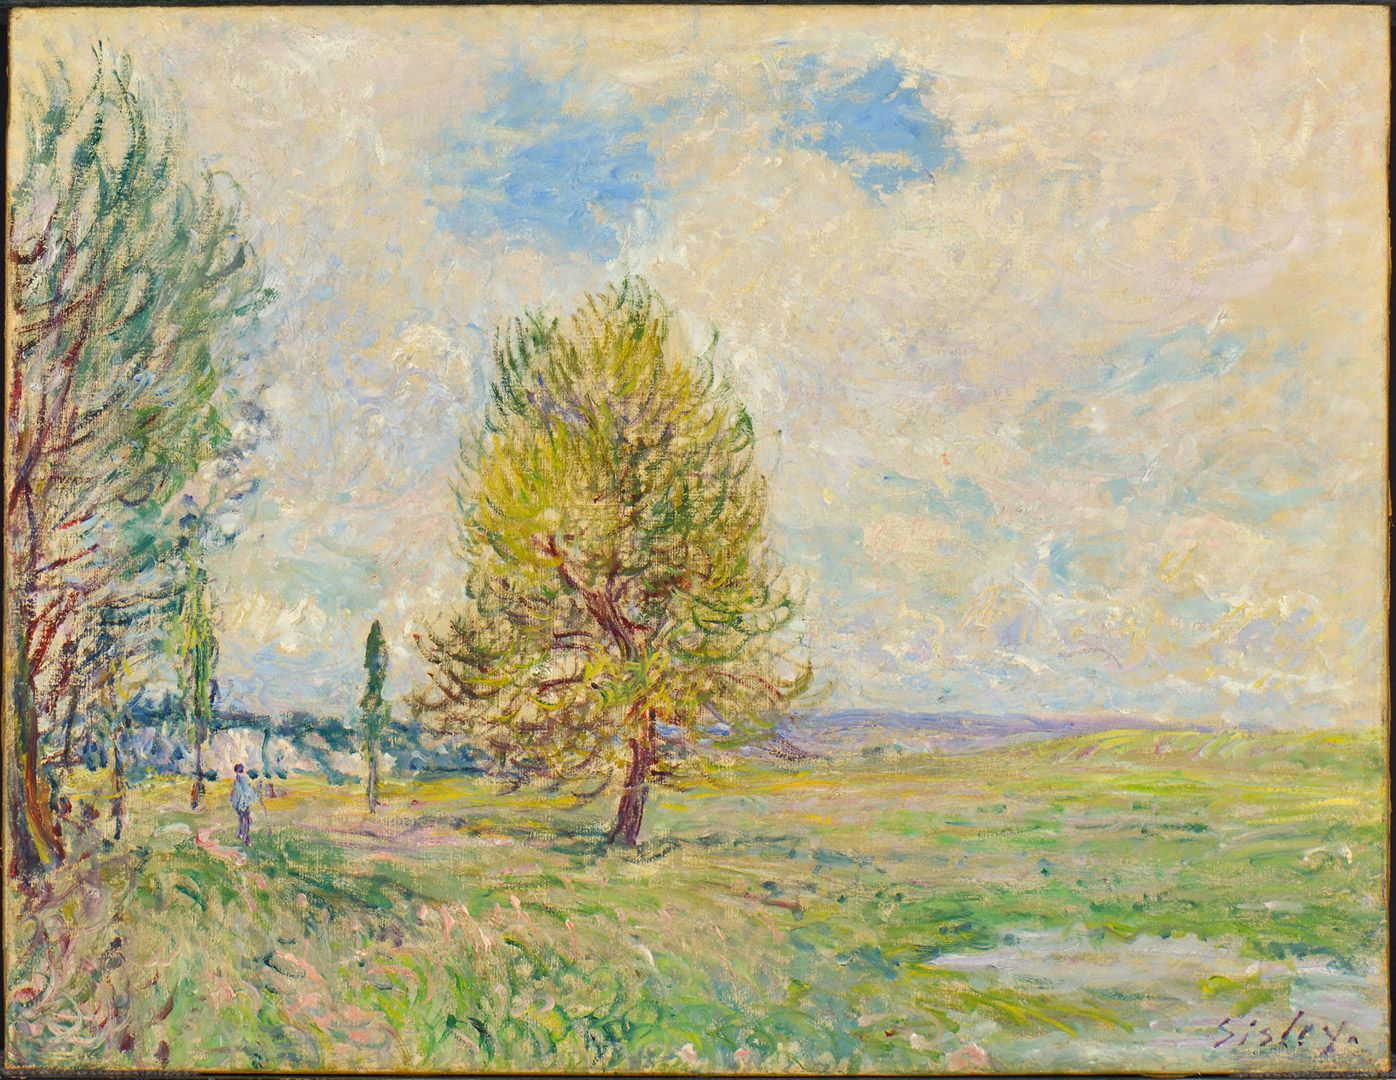 Alfred Sisley, The Plain at Veneux-Nadon, 1881, oil on canvas, 50.5 x 65.3 cm. Gift of Mr. and Mrs. Paul Ivanier.